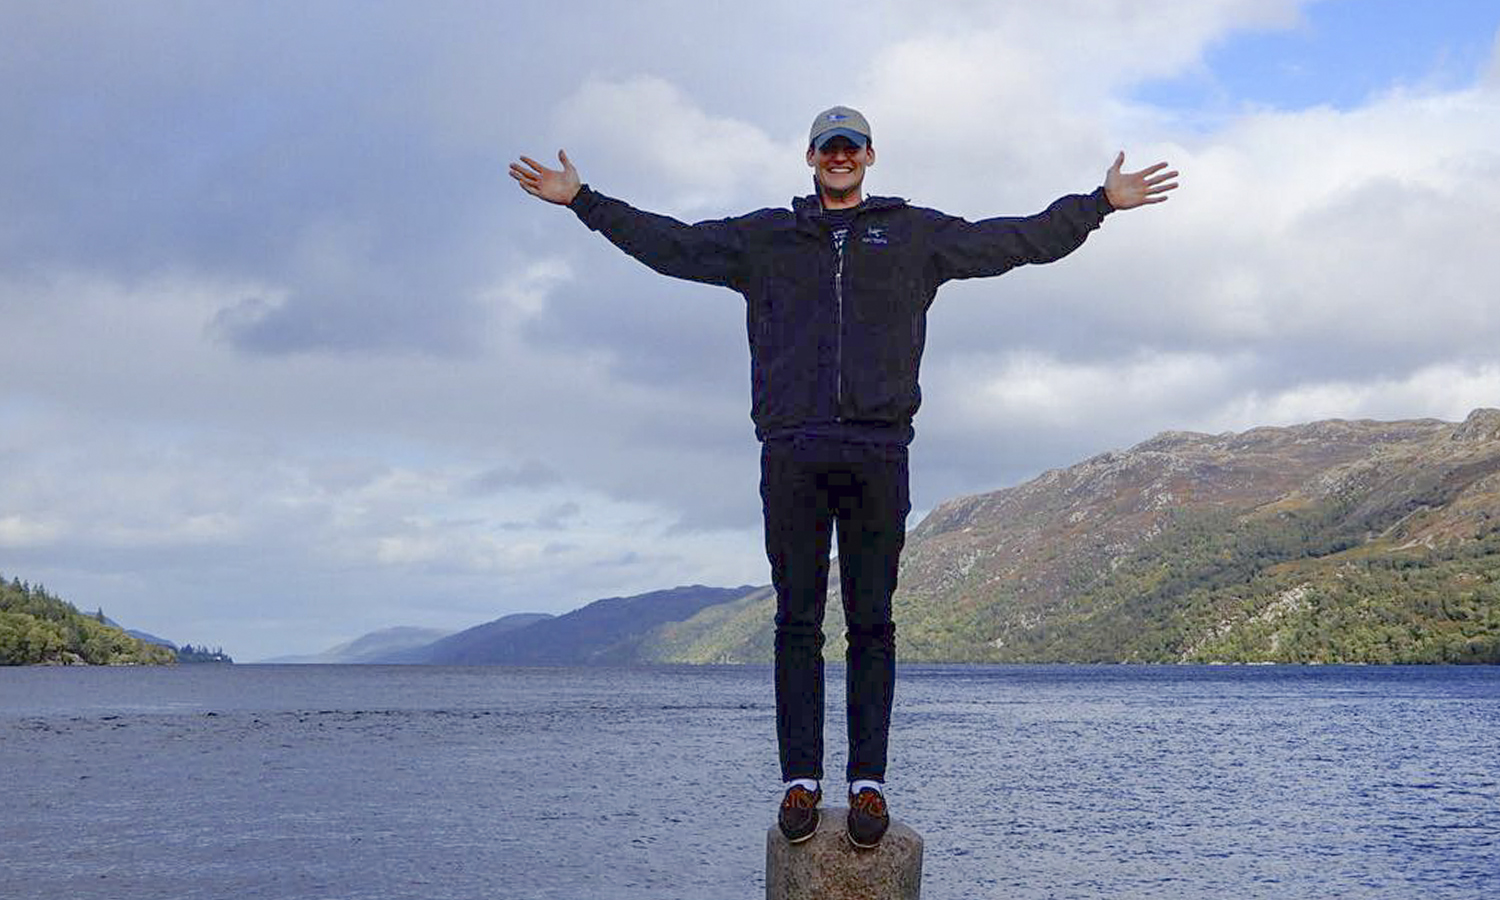 During a weekend excursion while studying abroad in Edinburgh, Scotland, John Schenk '20 poses in front of Loch Ness in Inverness, Scotland.